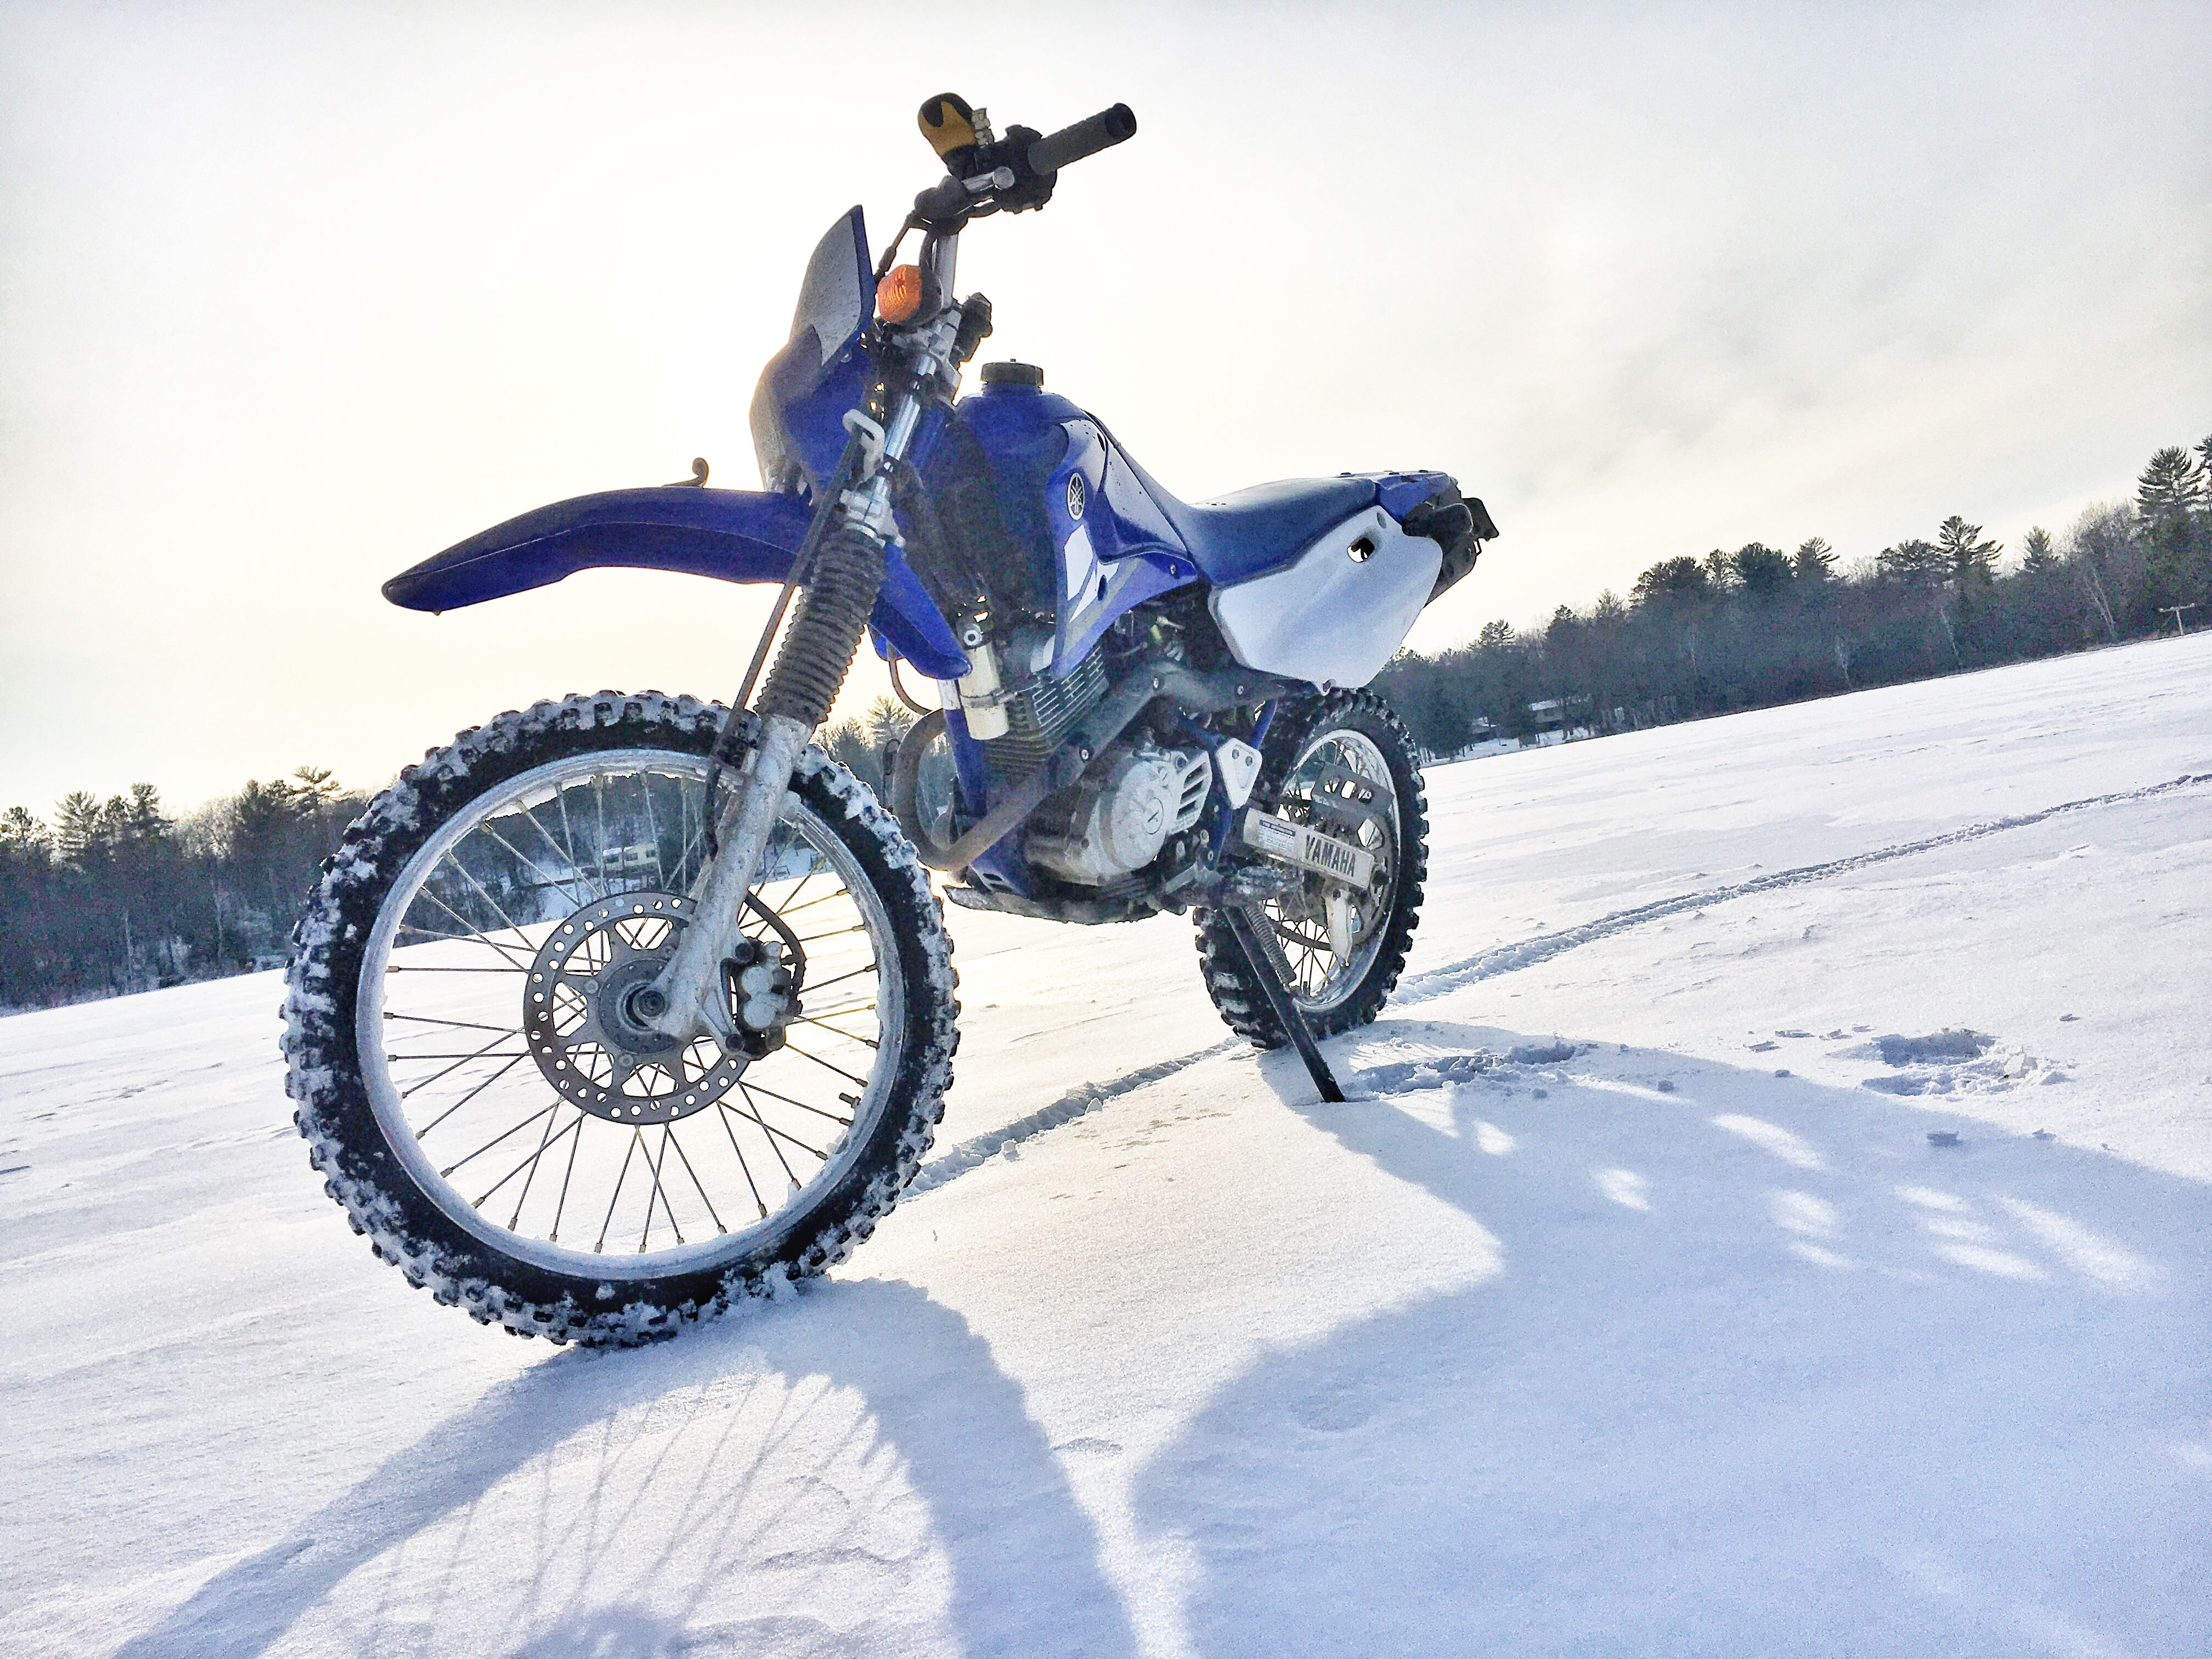 medium resolution of the lake cruising yamaha ttr 125l makes heading back to the cottage a breeze after a long day on the ice